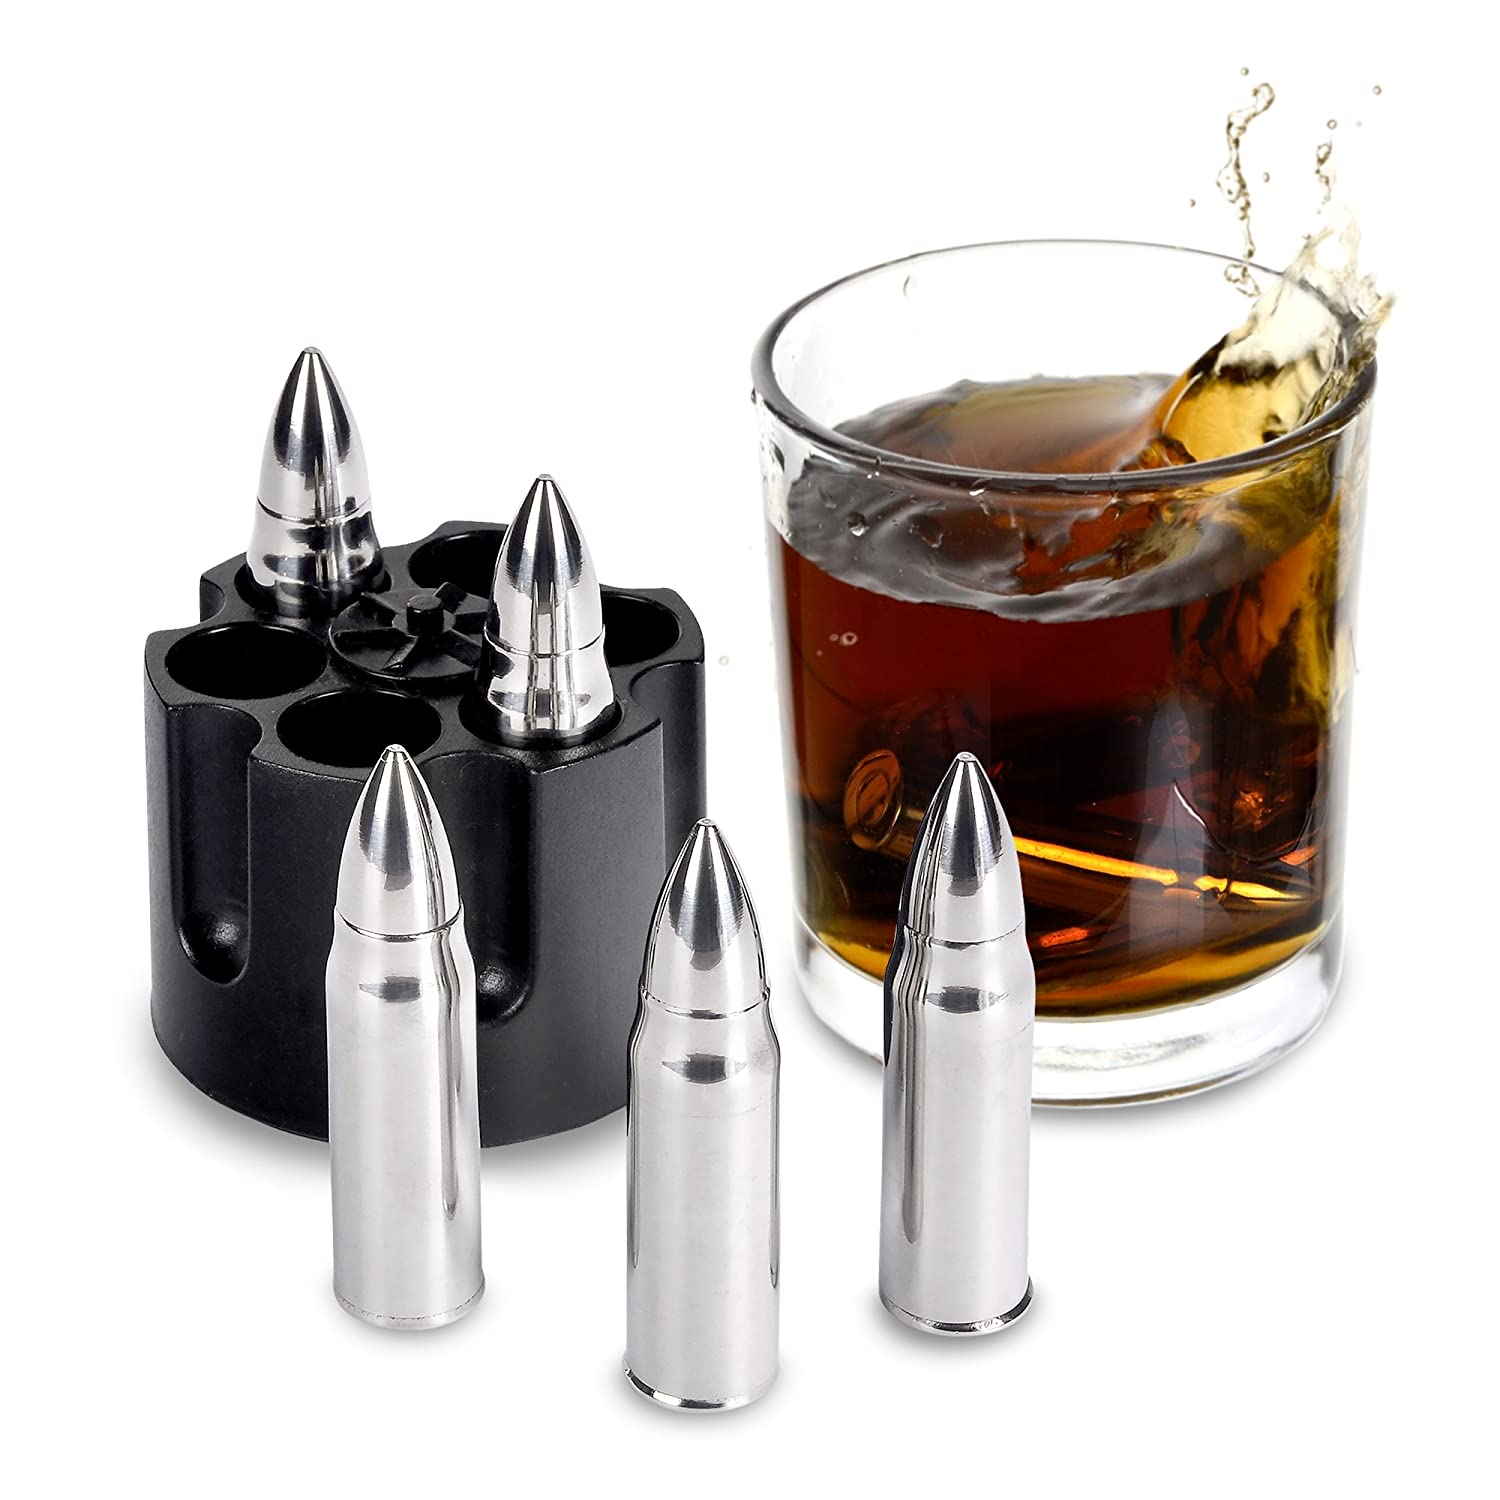 Whiskey Stones Gift Set - Stainless Steel Bullet Chillers - 6 Chilling Stones with Revolver Base - Long Lasting Taste - Perfect for Whiskey and Scotch Connoisseurs